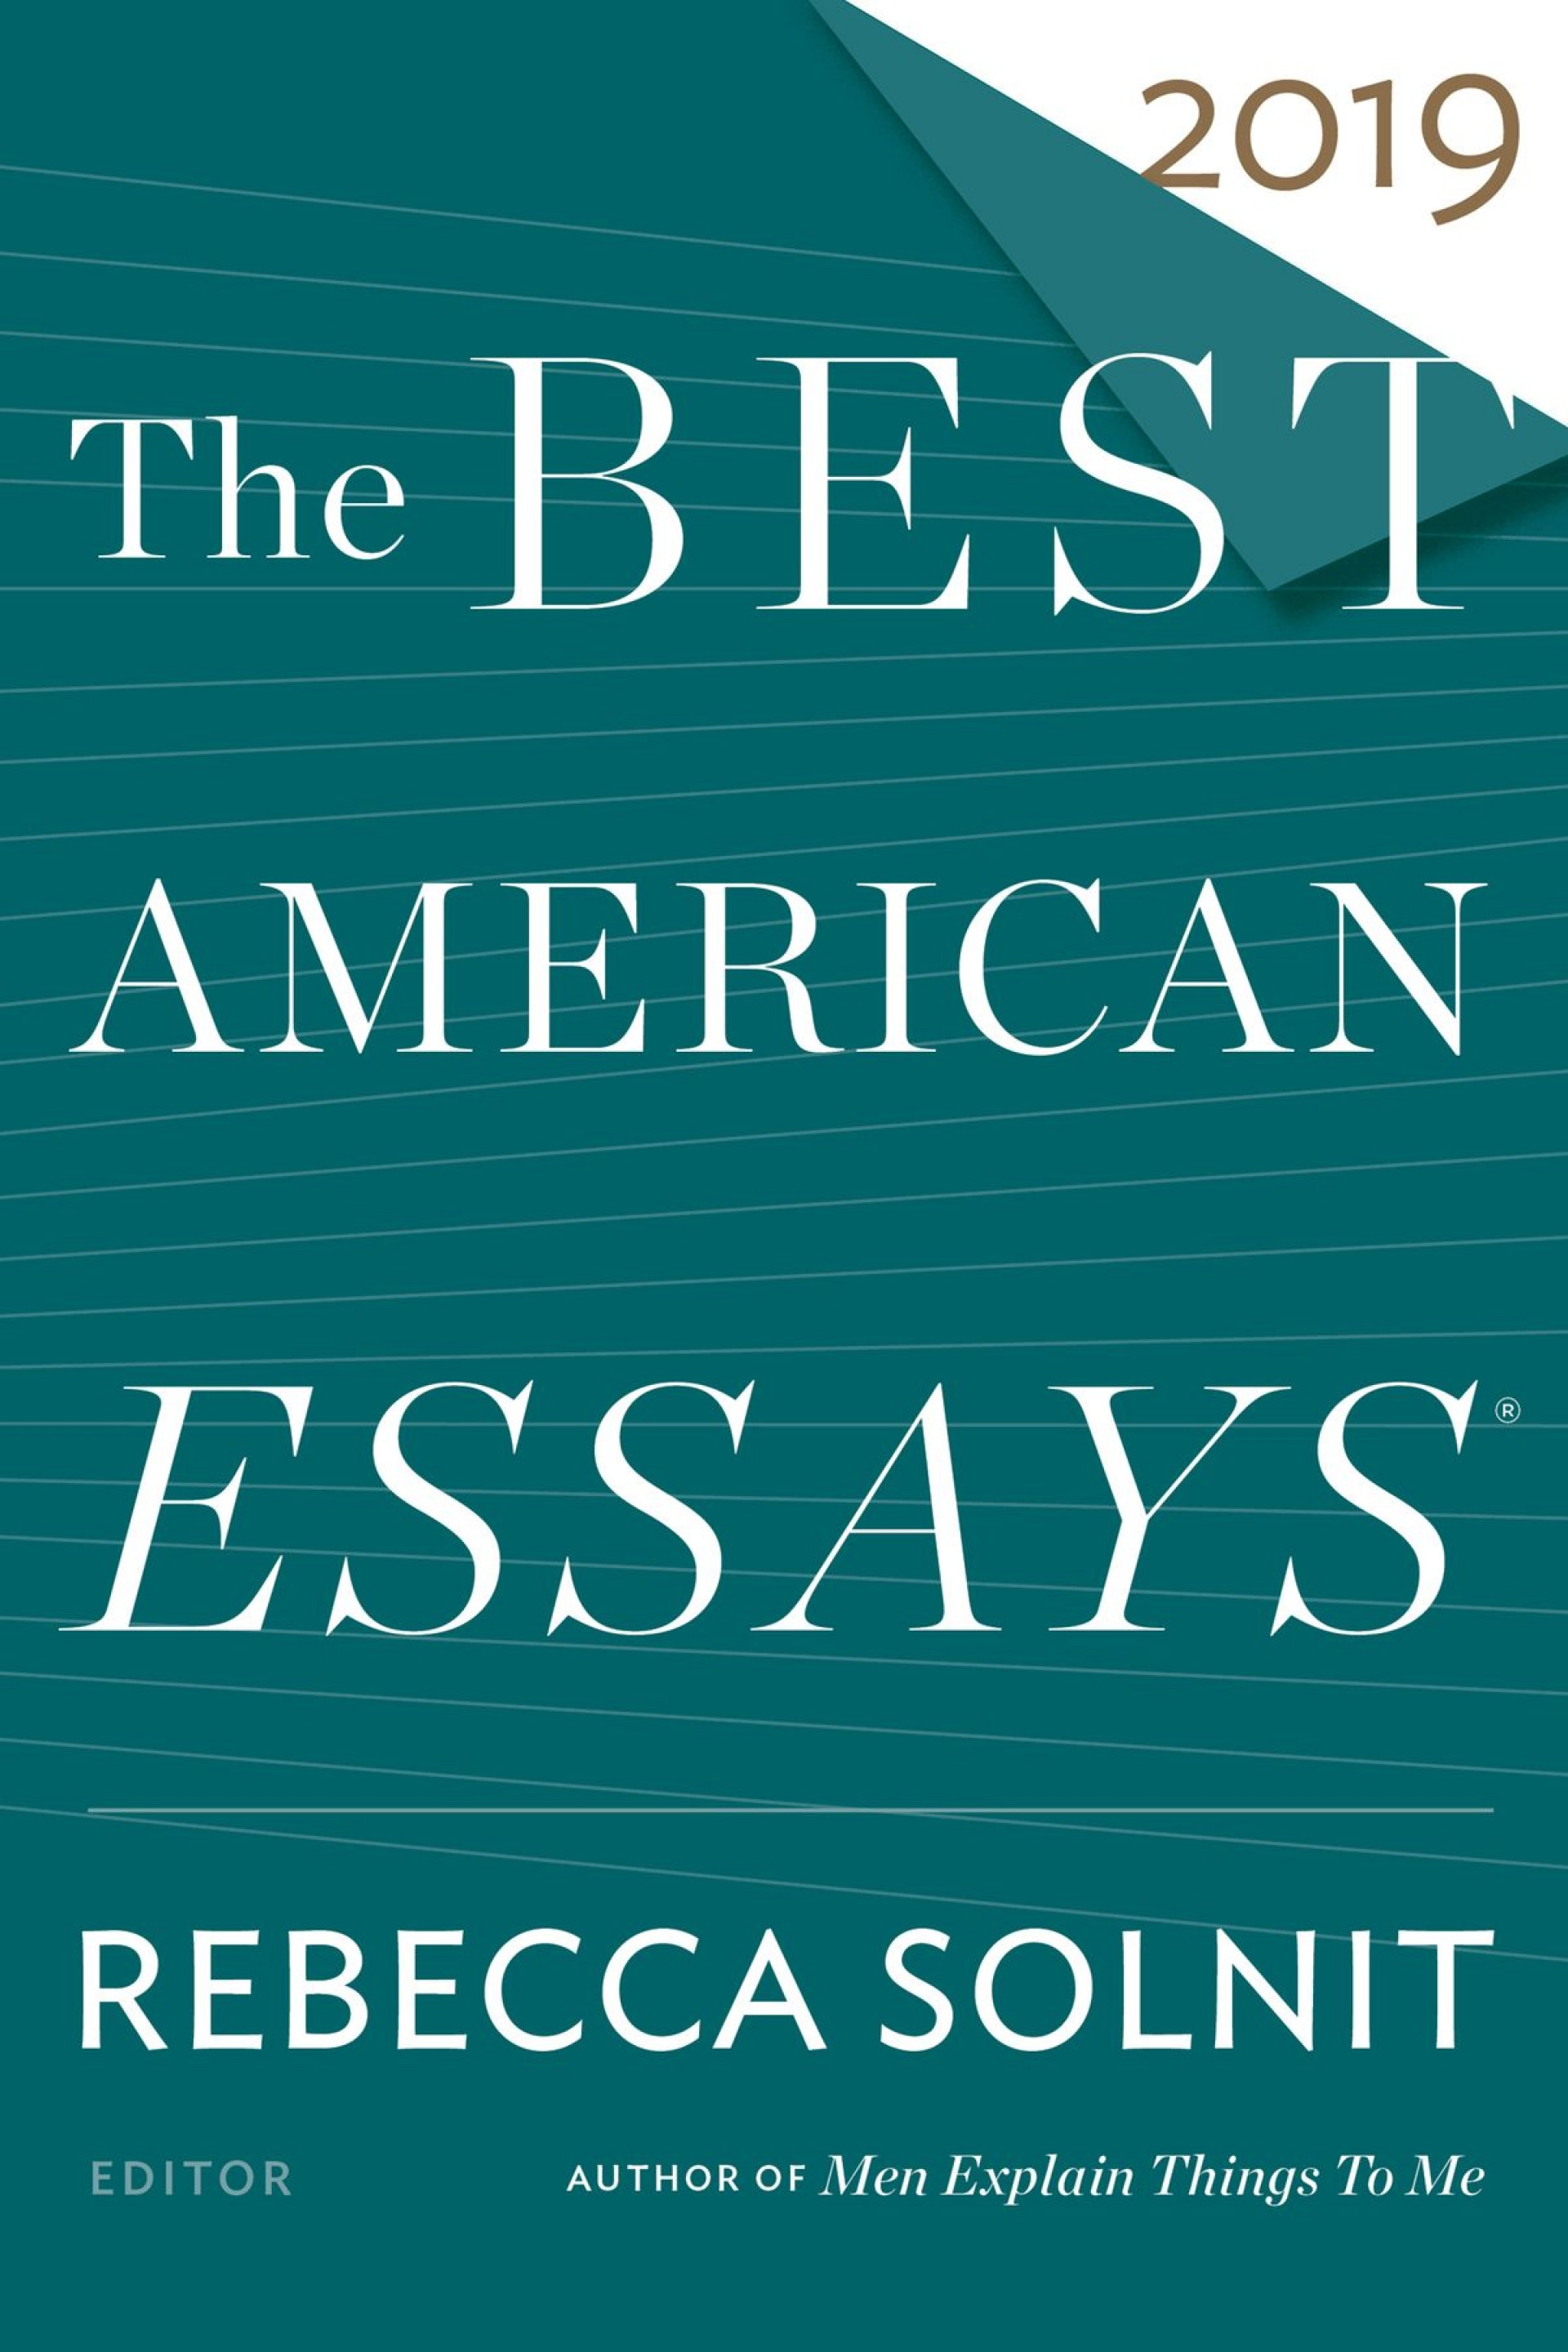 007 The Best American Essays Essay Wonderful 2013 Pdf Download Of Century Sparknotes 2017 1920